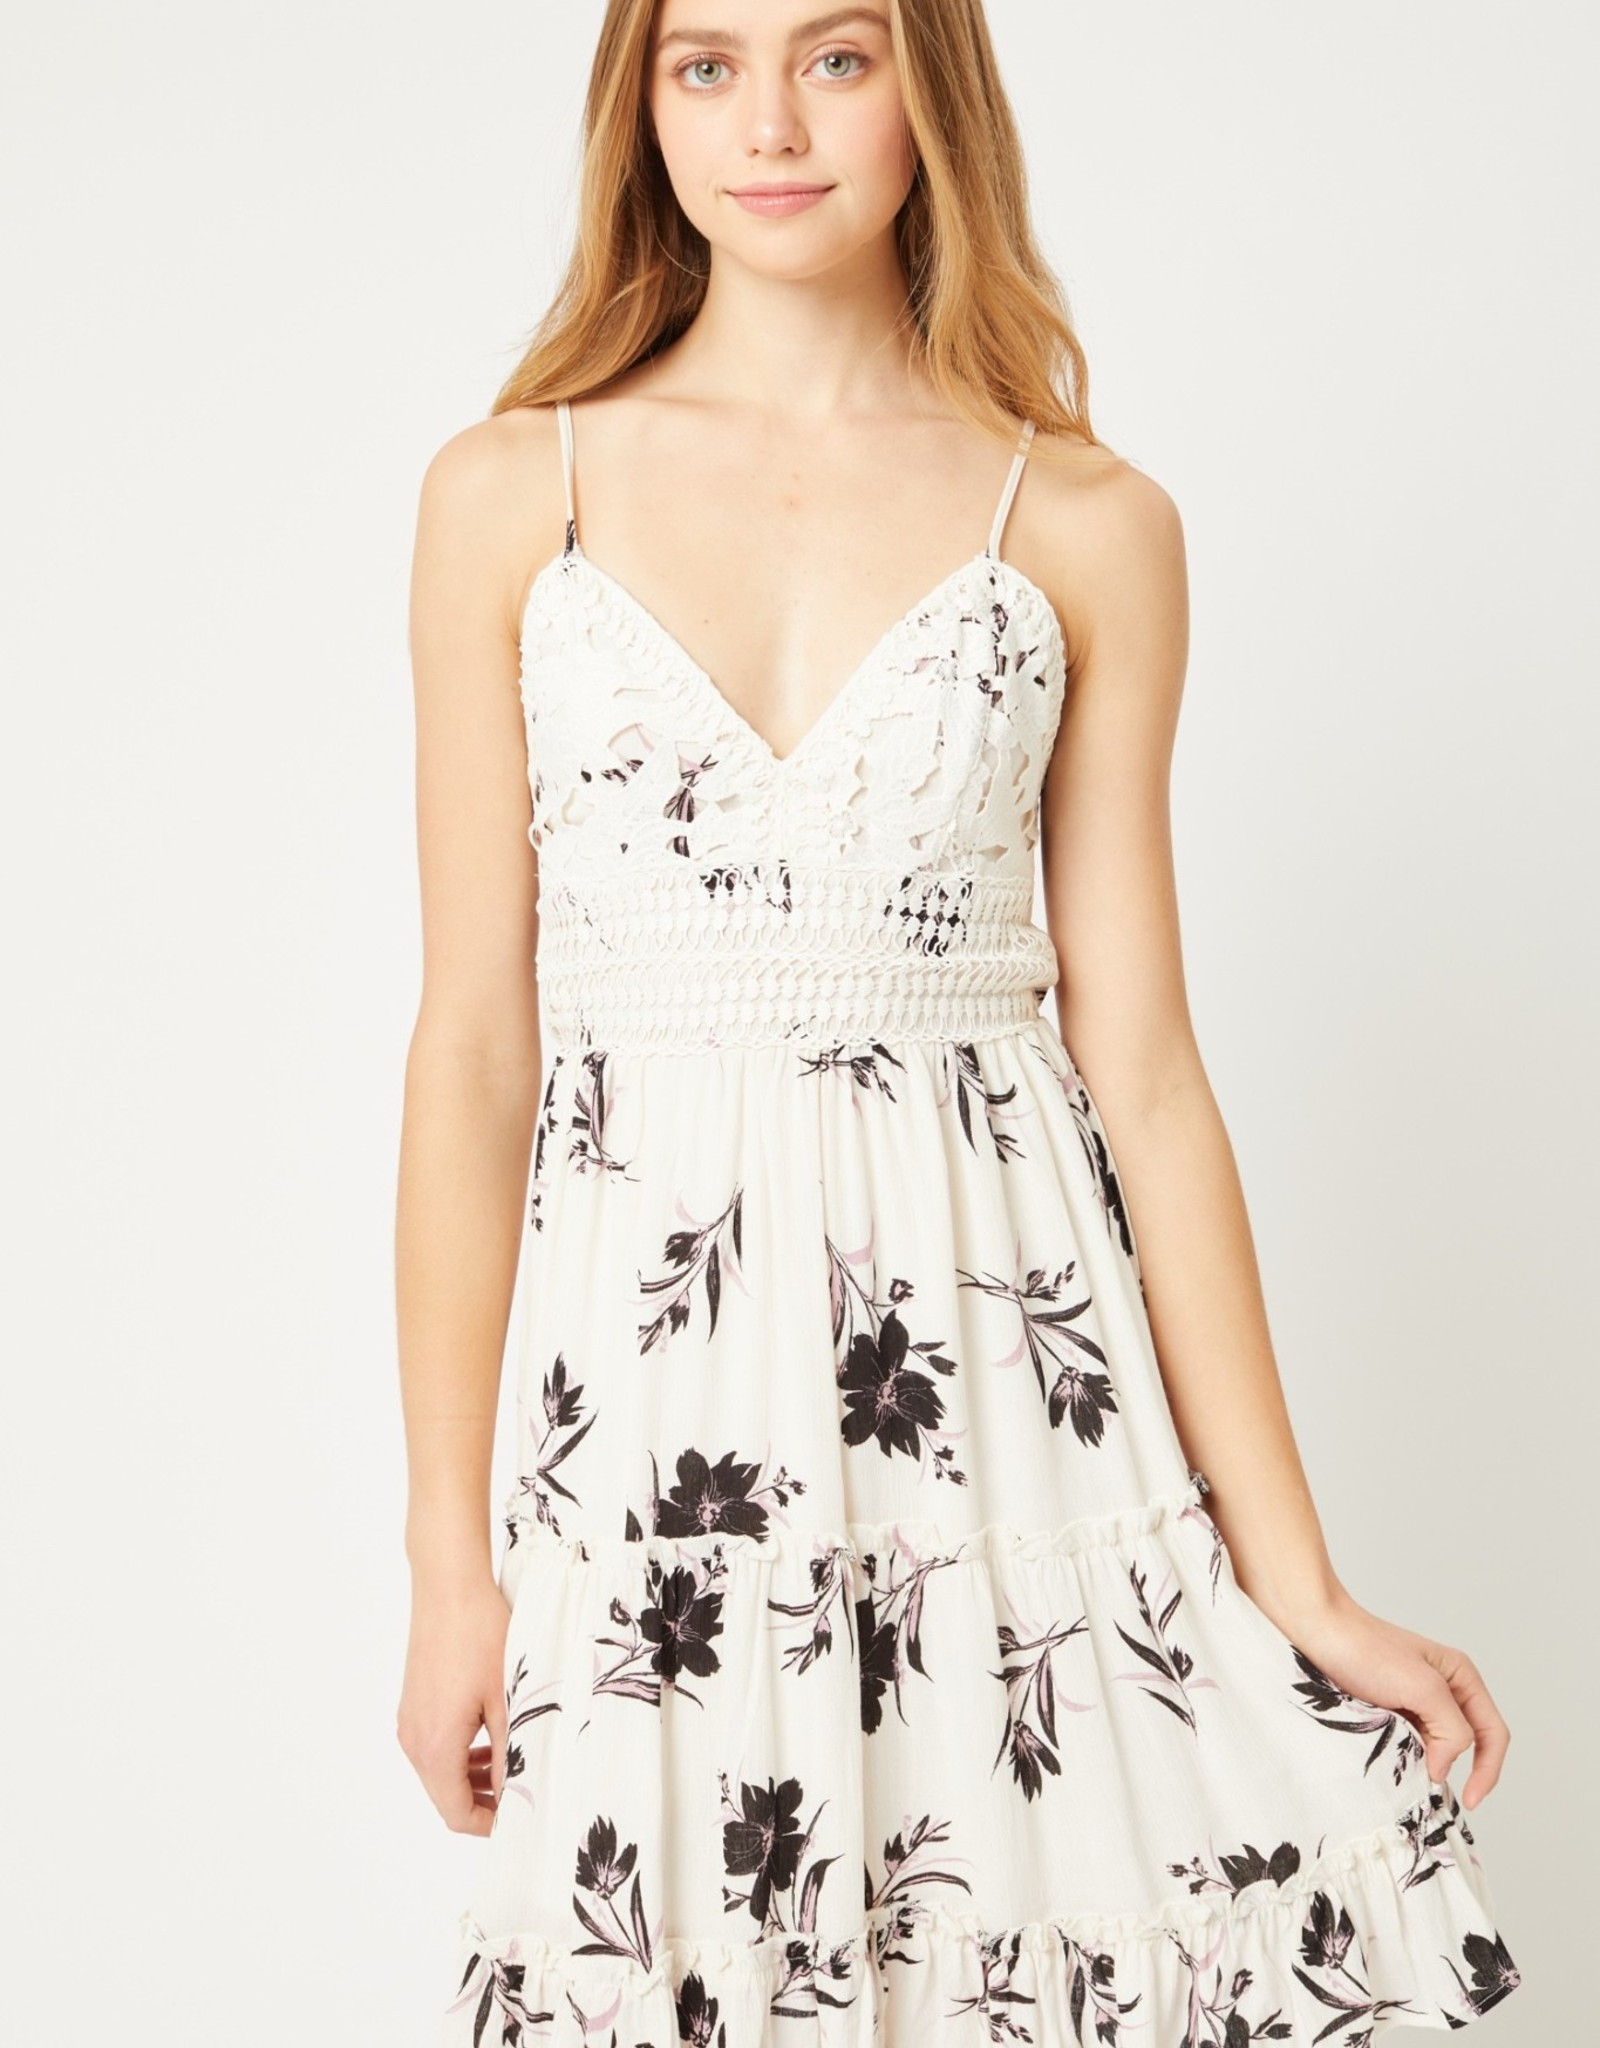 Miss Bliss Floral Lace Tank Dress- Ivory